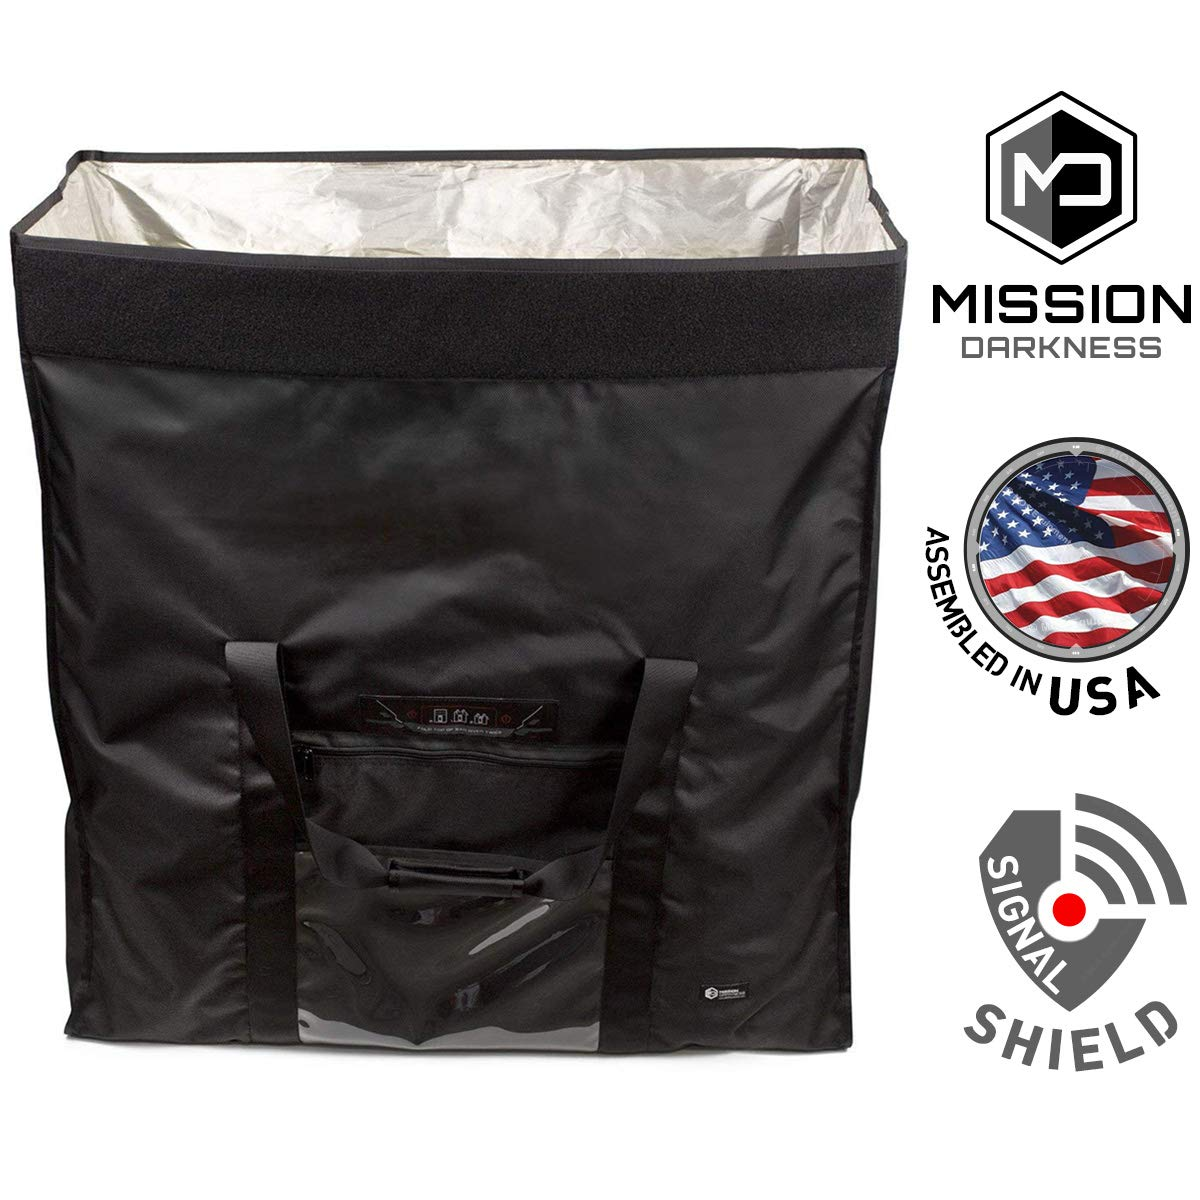 Mission Darkness Revelation EMP Shield for Generators and Extra-Large Electronics. Military-Grade Faraday Bag Designed for EMP/CME Protection, Forensic Investigators, preppers, and Personal Security by Mission Darkness (Image #1)